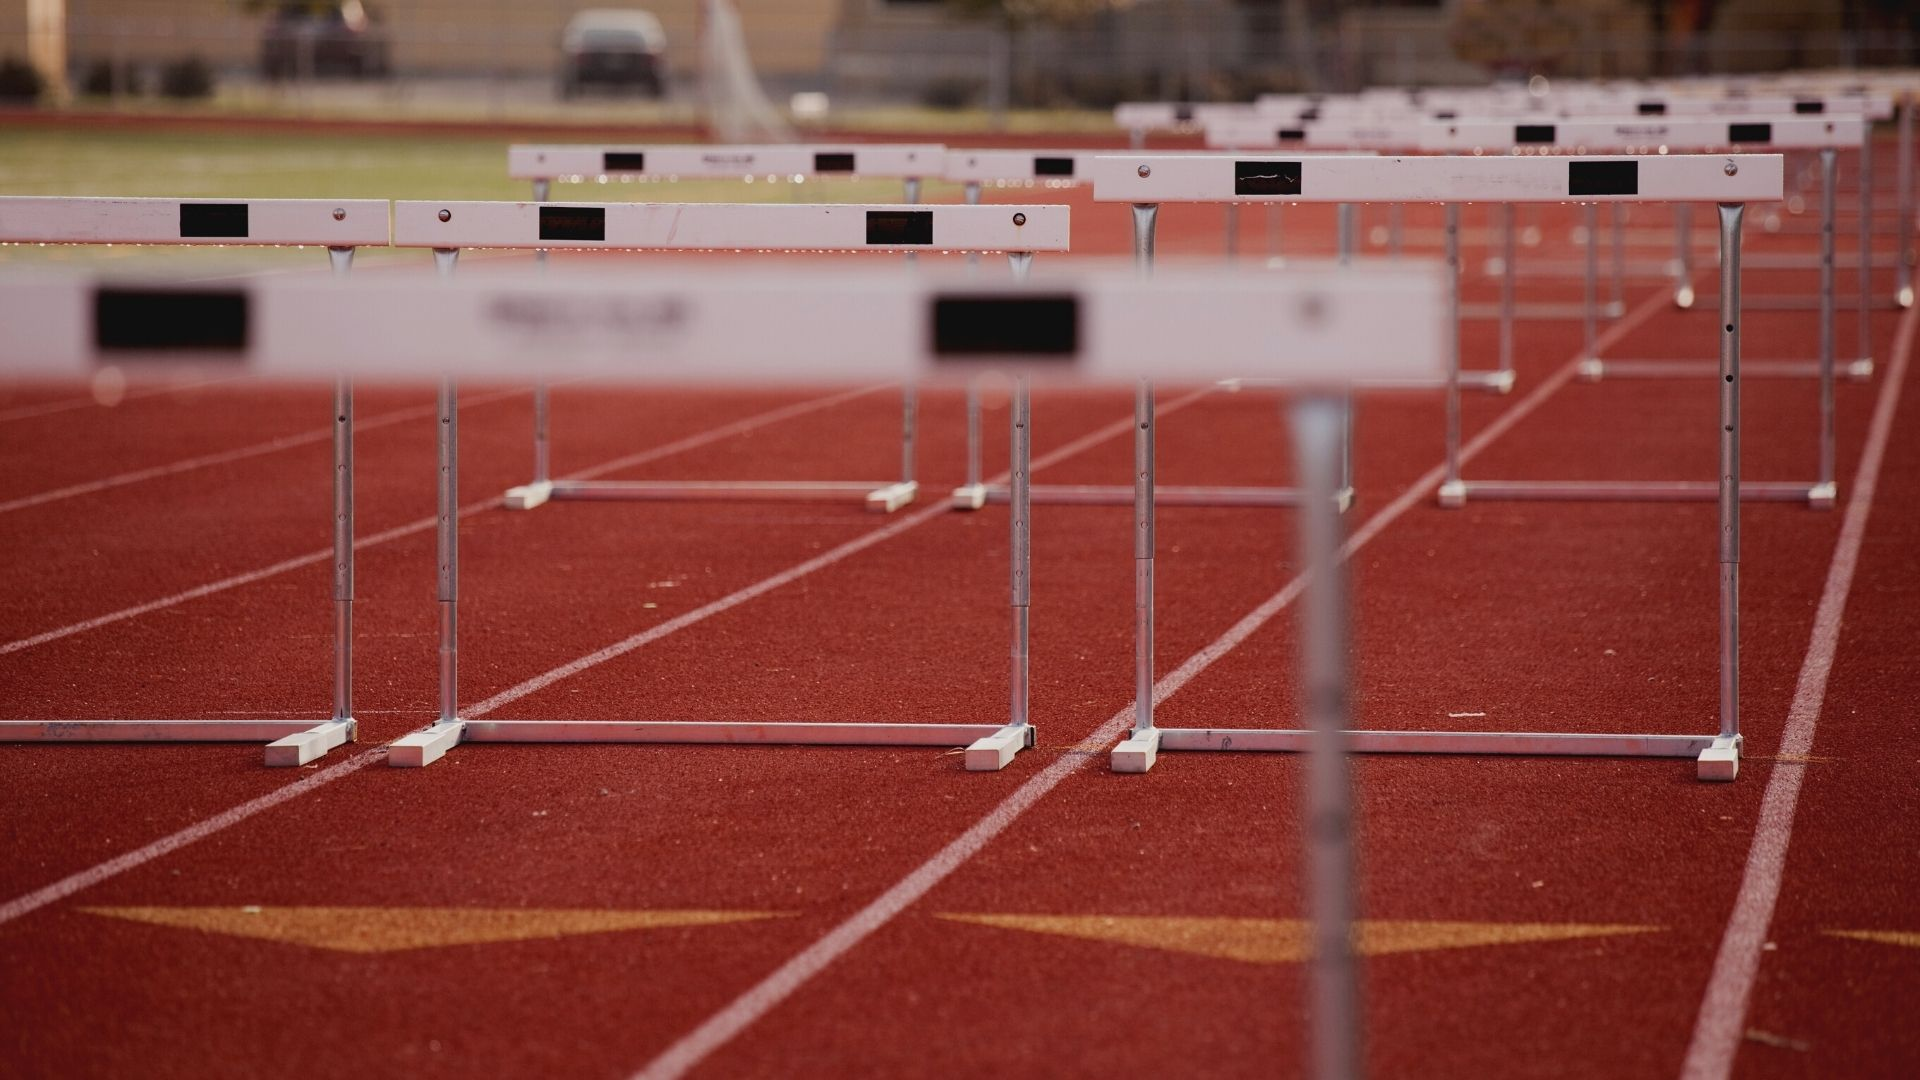 WHAT'S YOUR HURDLE 1?